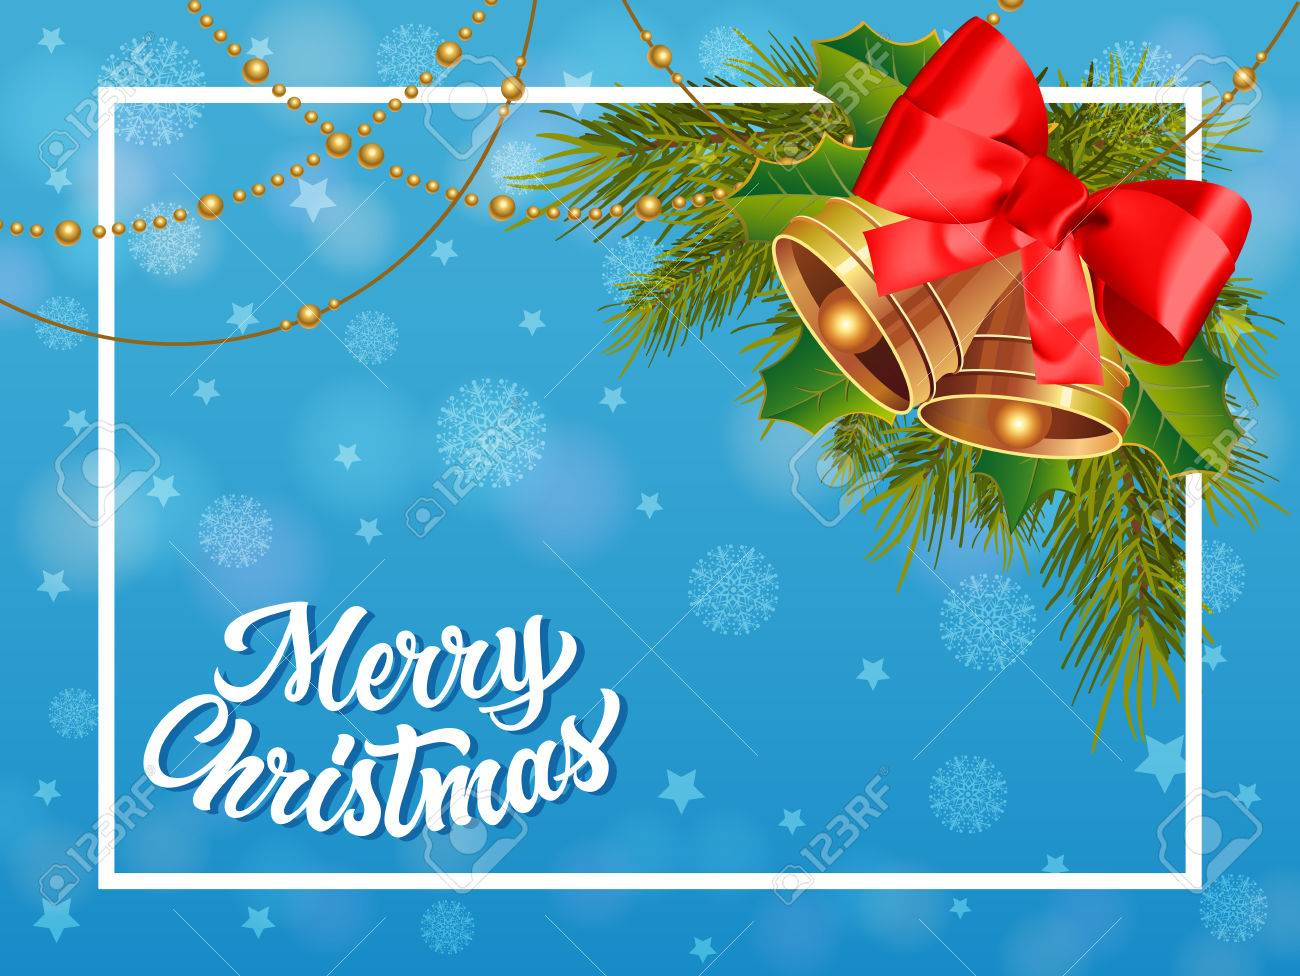 Merry Christmas Lettering In Frame Christmas Greeting Card With